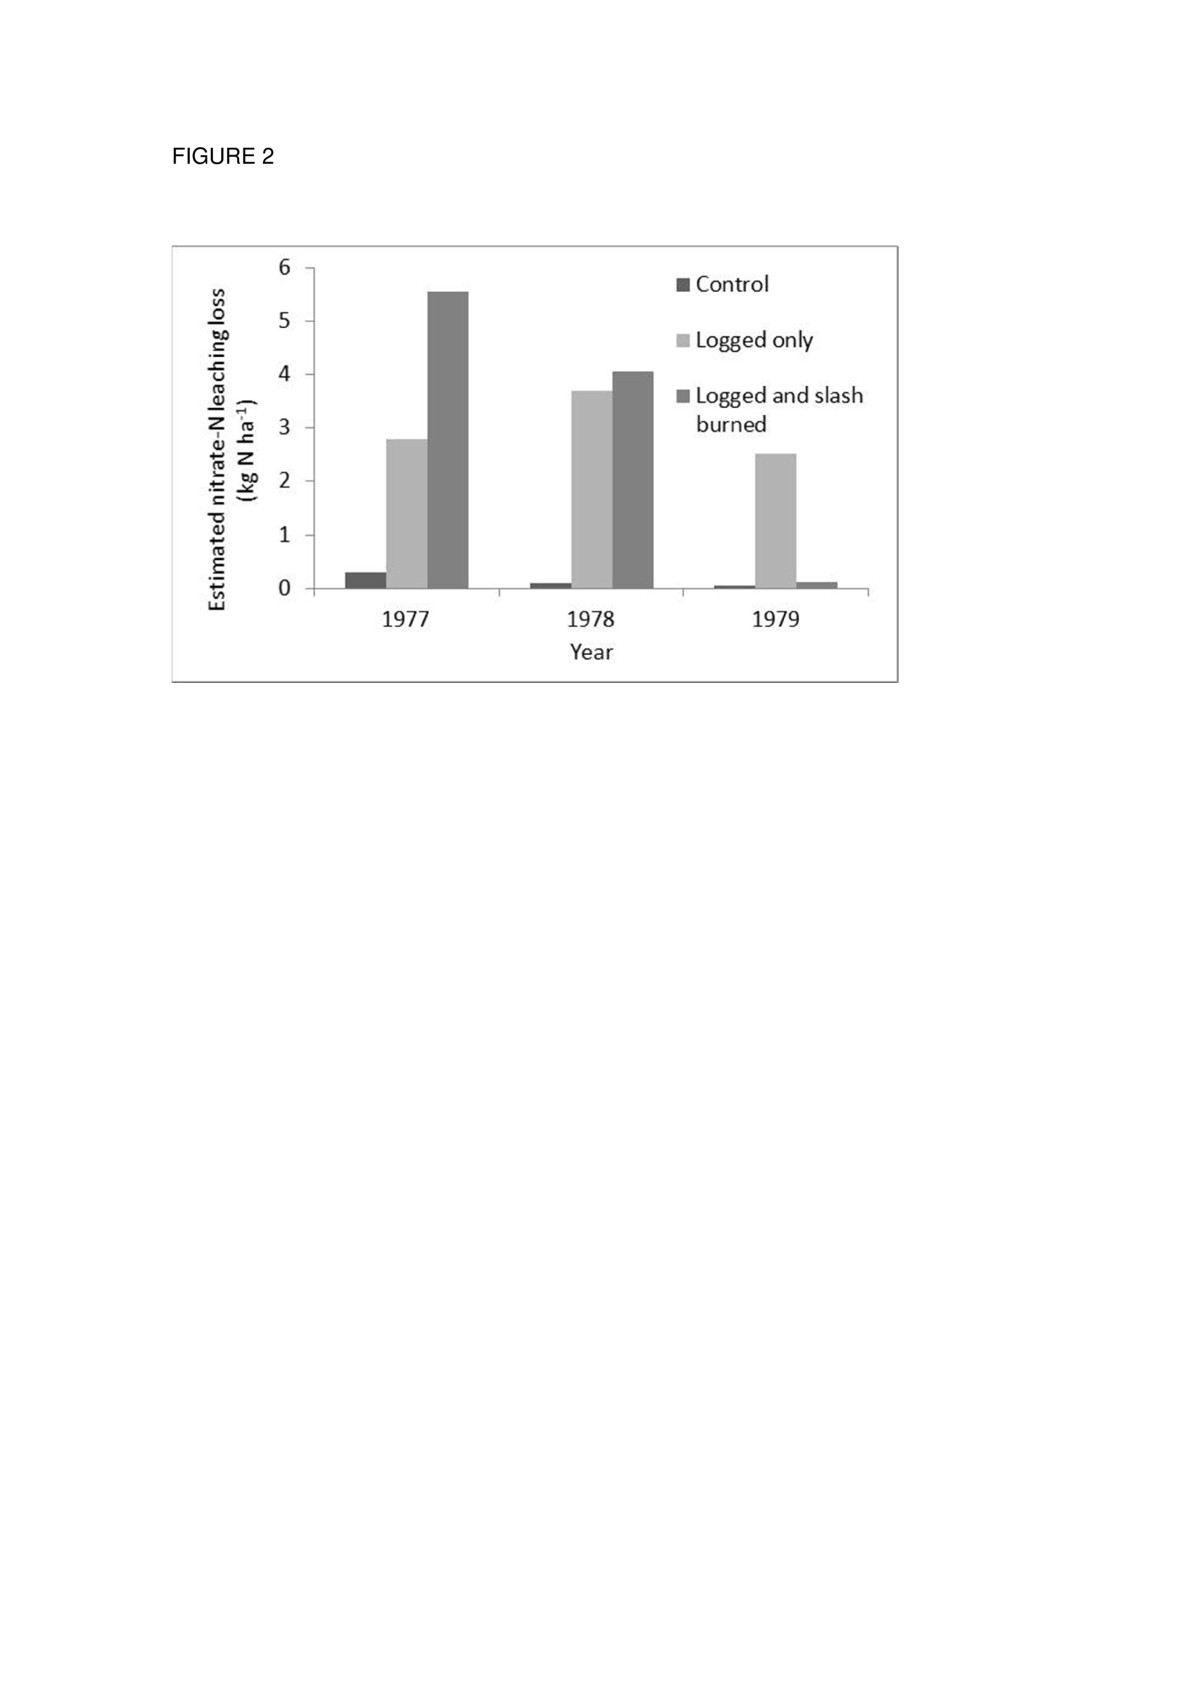 https://static-content.springer.com/image/art%3A10.1186%2F1179-5395-44-2/MediaObjects/40490_2013_Article_5014_Fig2_HTML.jpg